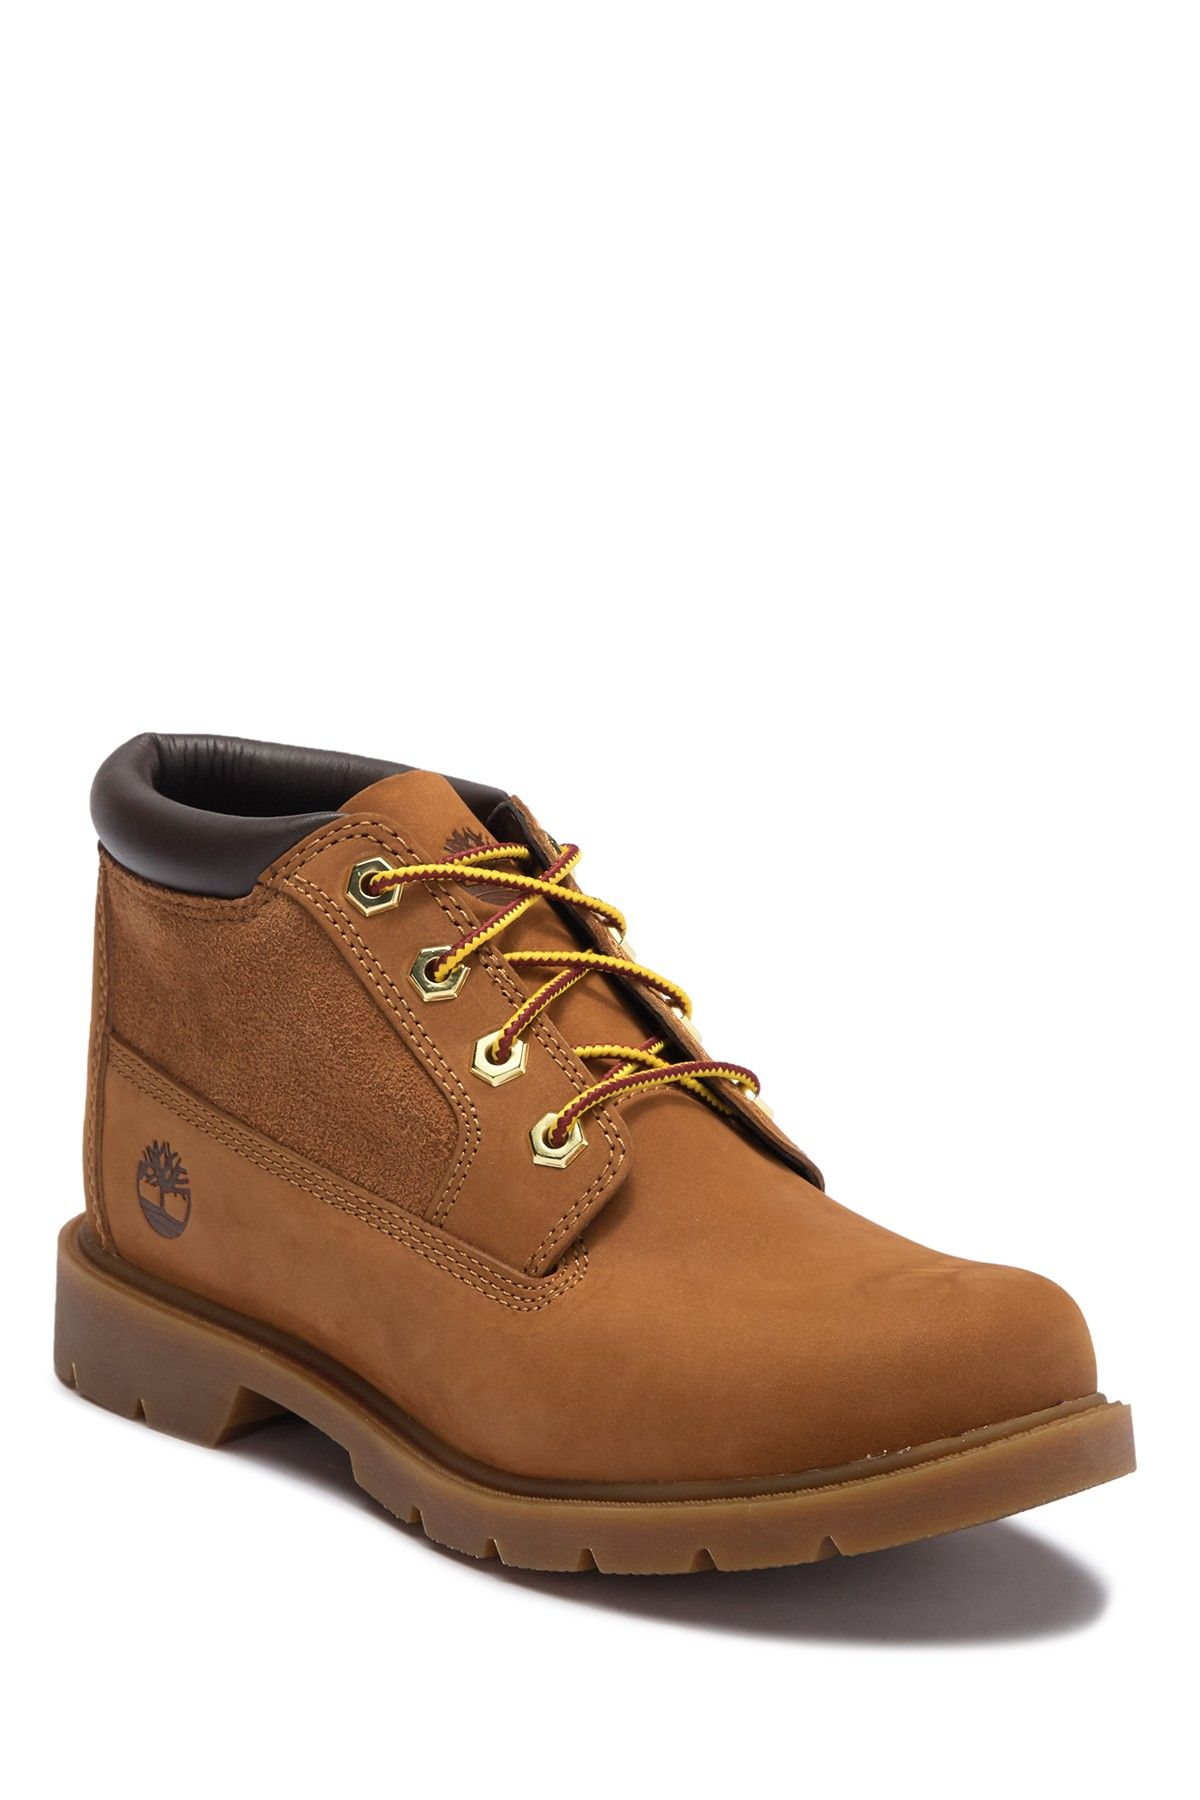 best sneakers d147c 21290 Rhinebeck Leather Chukka Boot | Accessories | Leather chukka ...